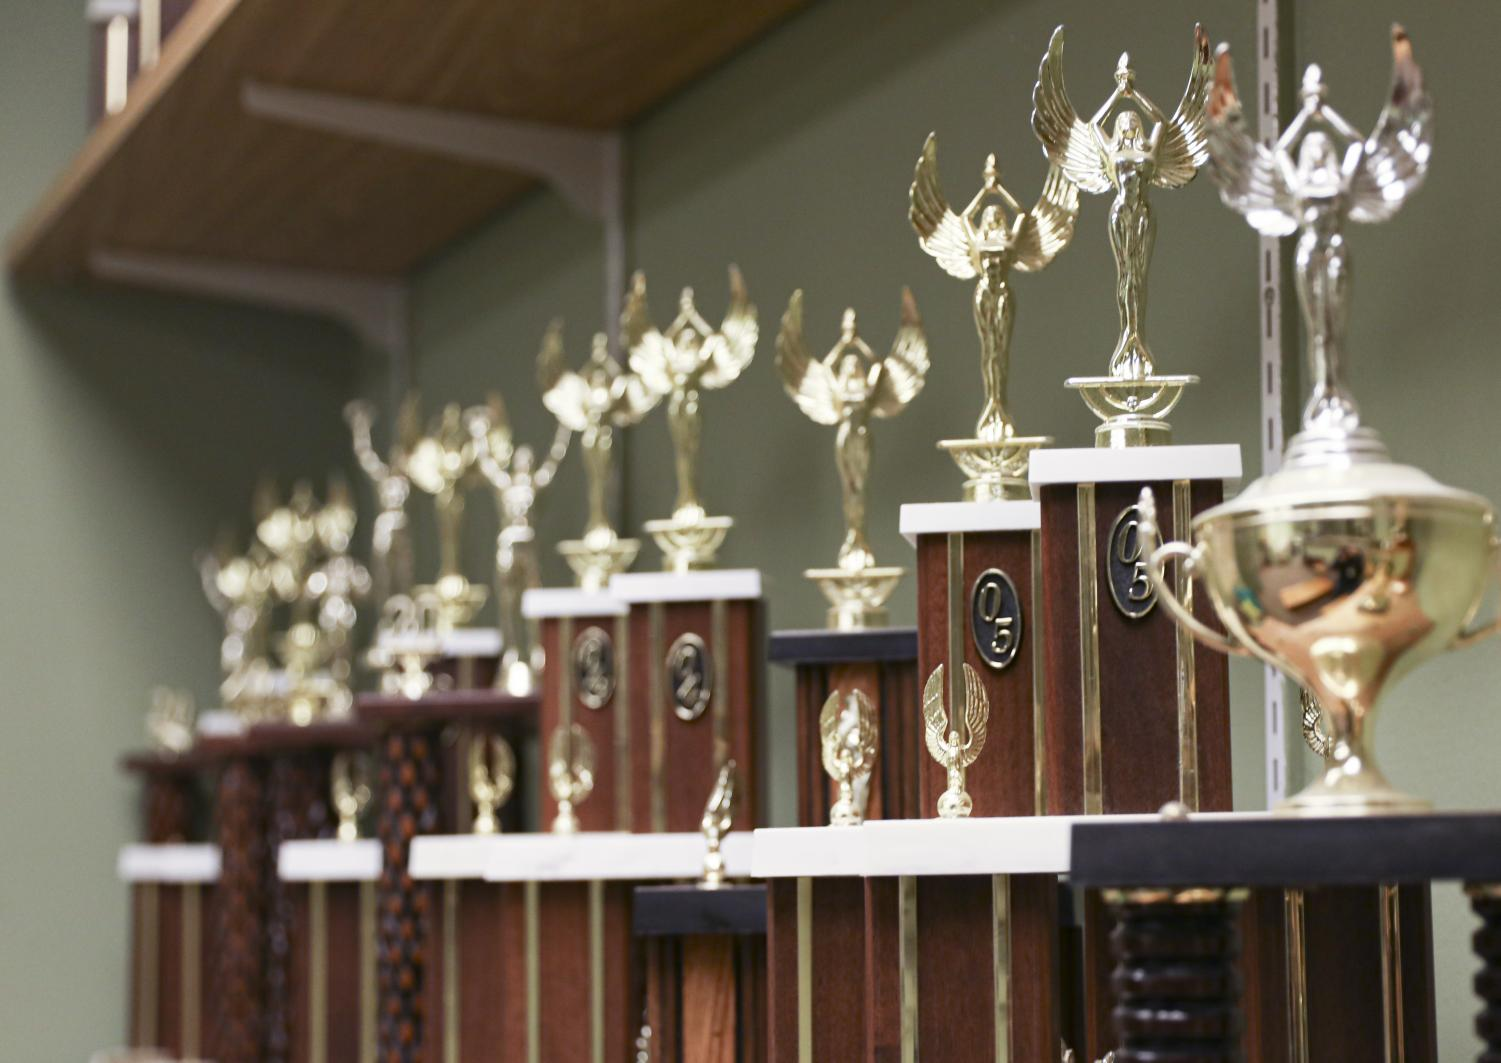 The Moorpark Forensics team's trophies are displayed in the performing arts center.  The Forensics team is preparing to debate in the 2019 Fall Forensics Showcase in the performing arts center Dec. 9-10. Photo credit: Ryan Bough